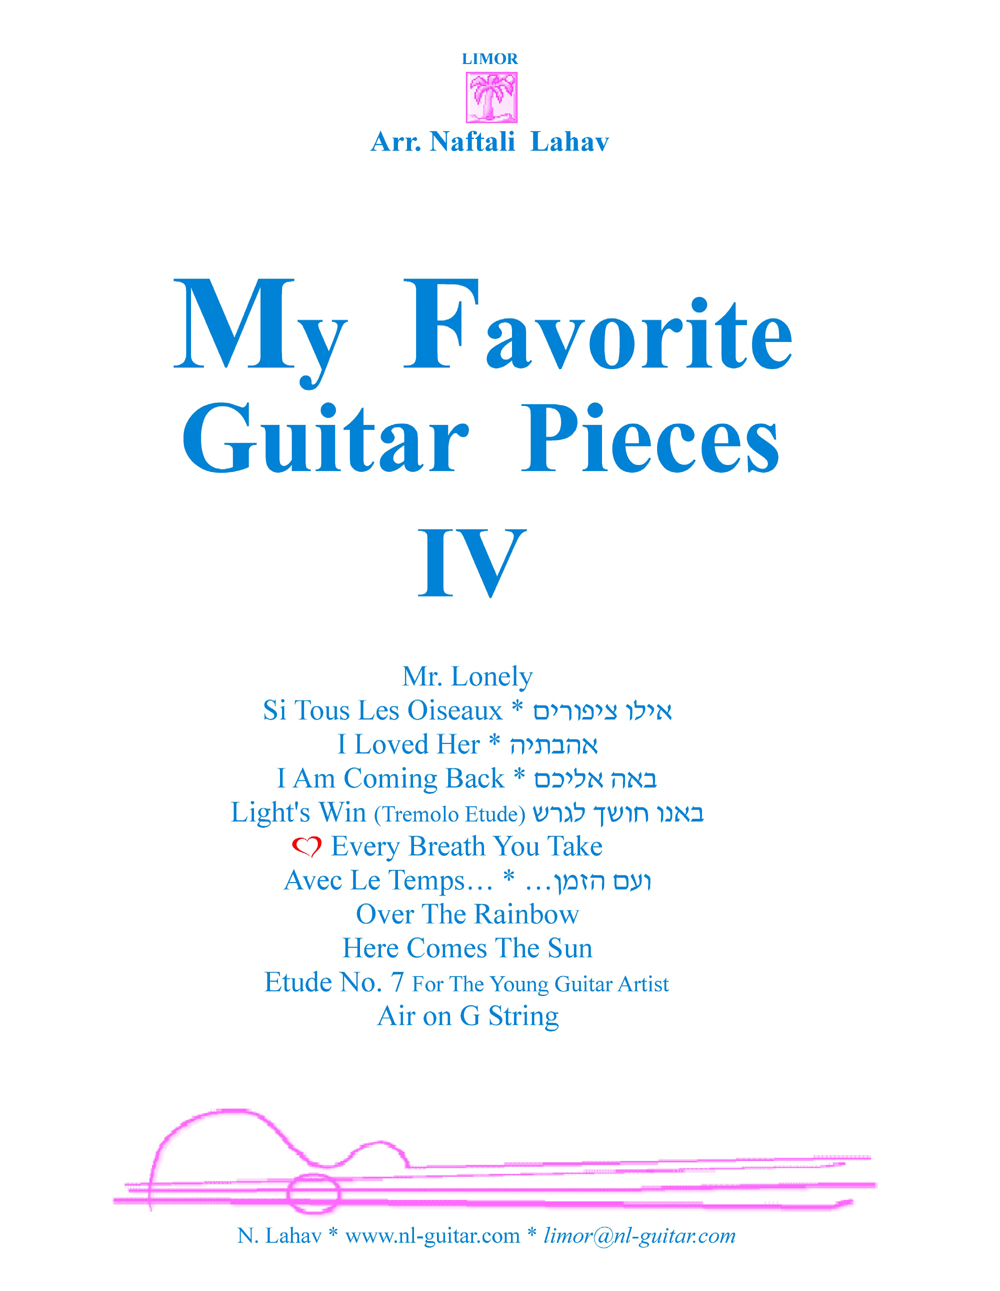 My Favorite Guitar Pieces IV - Hard Copy